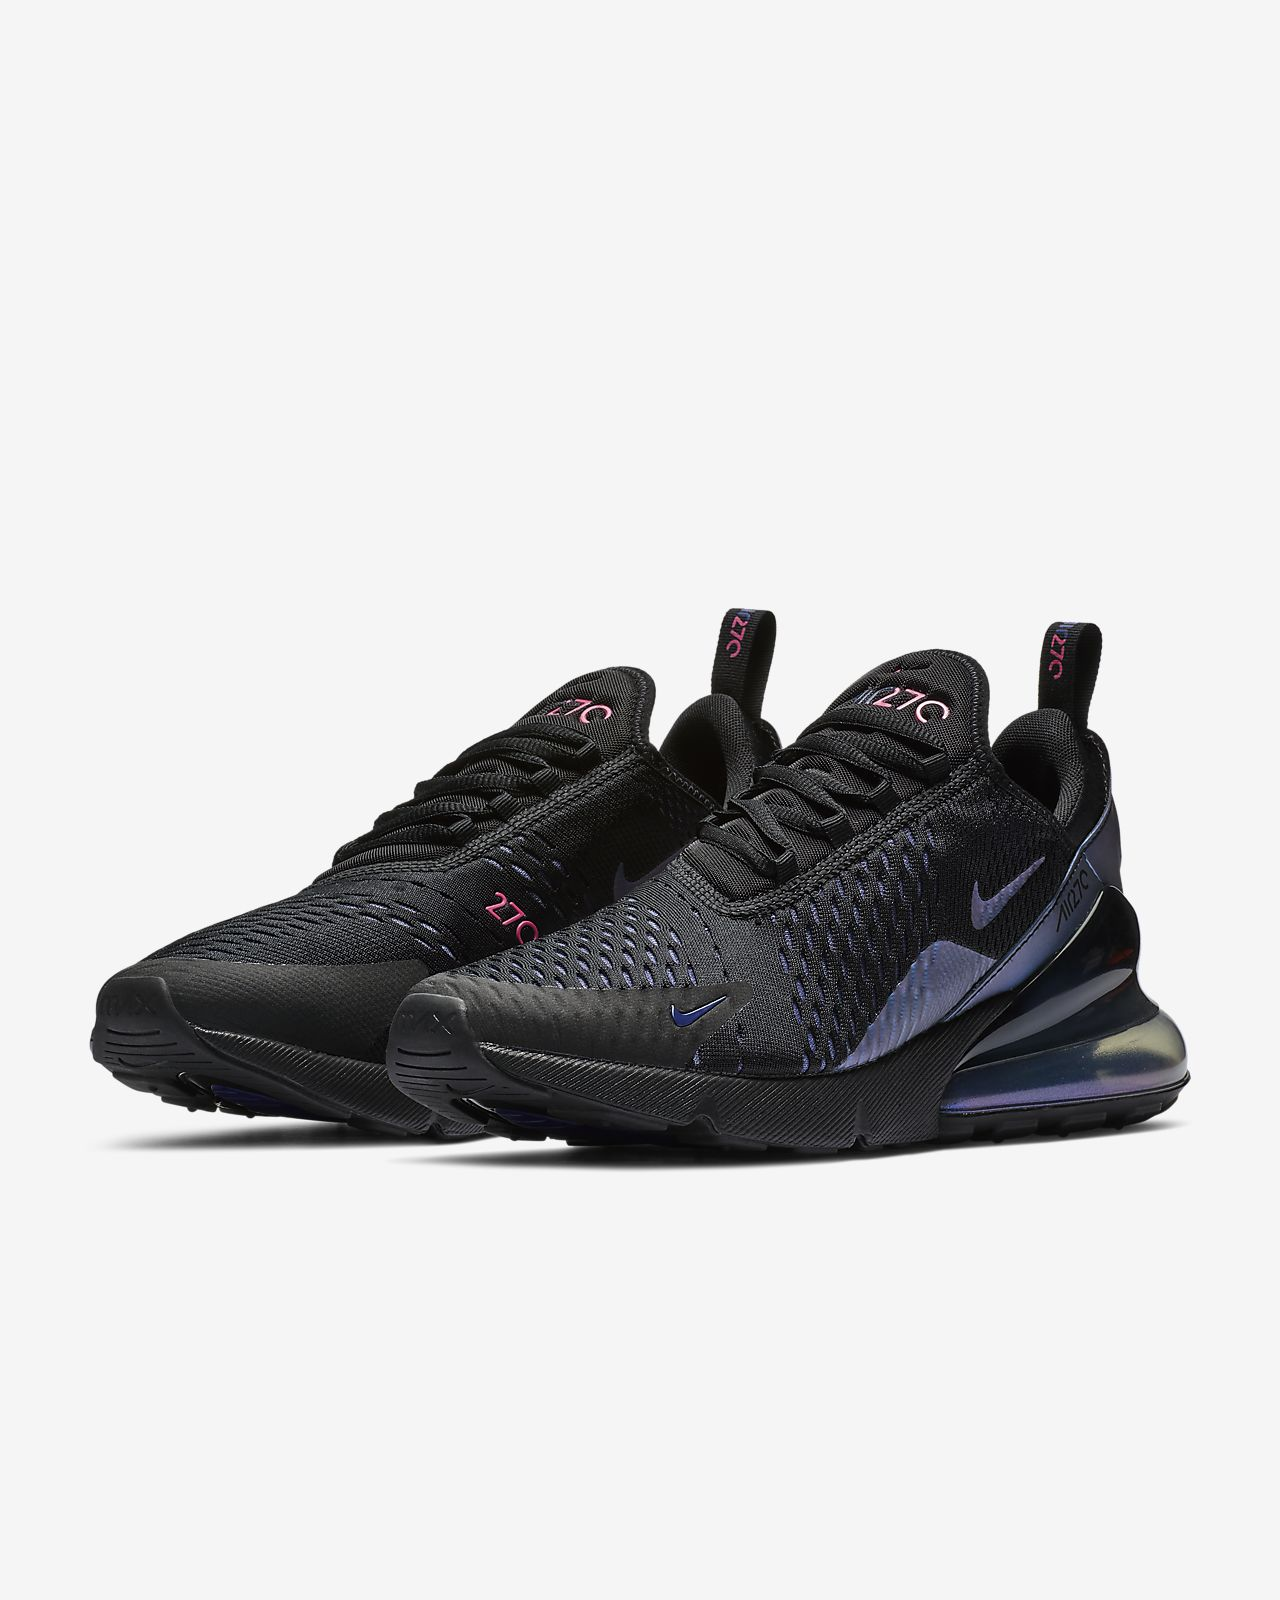 reputable site ecd1a 8eeea ... Nike Air Max 270 Mens Shoe